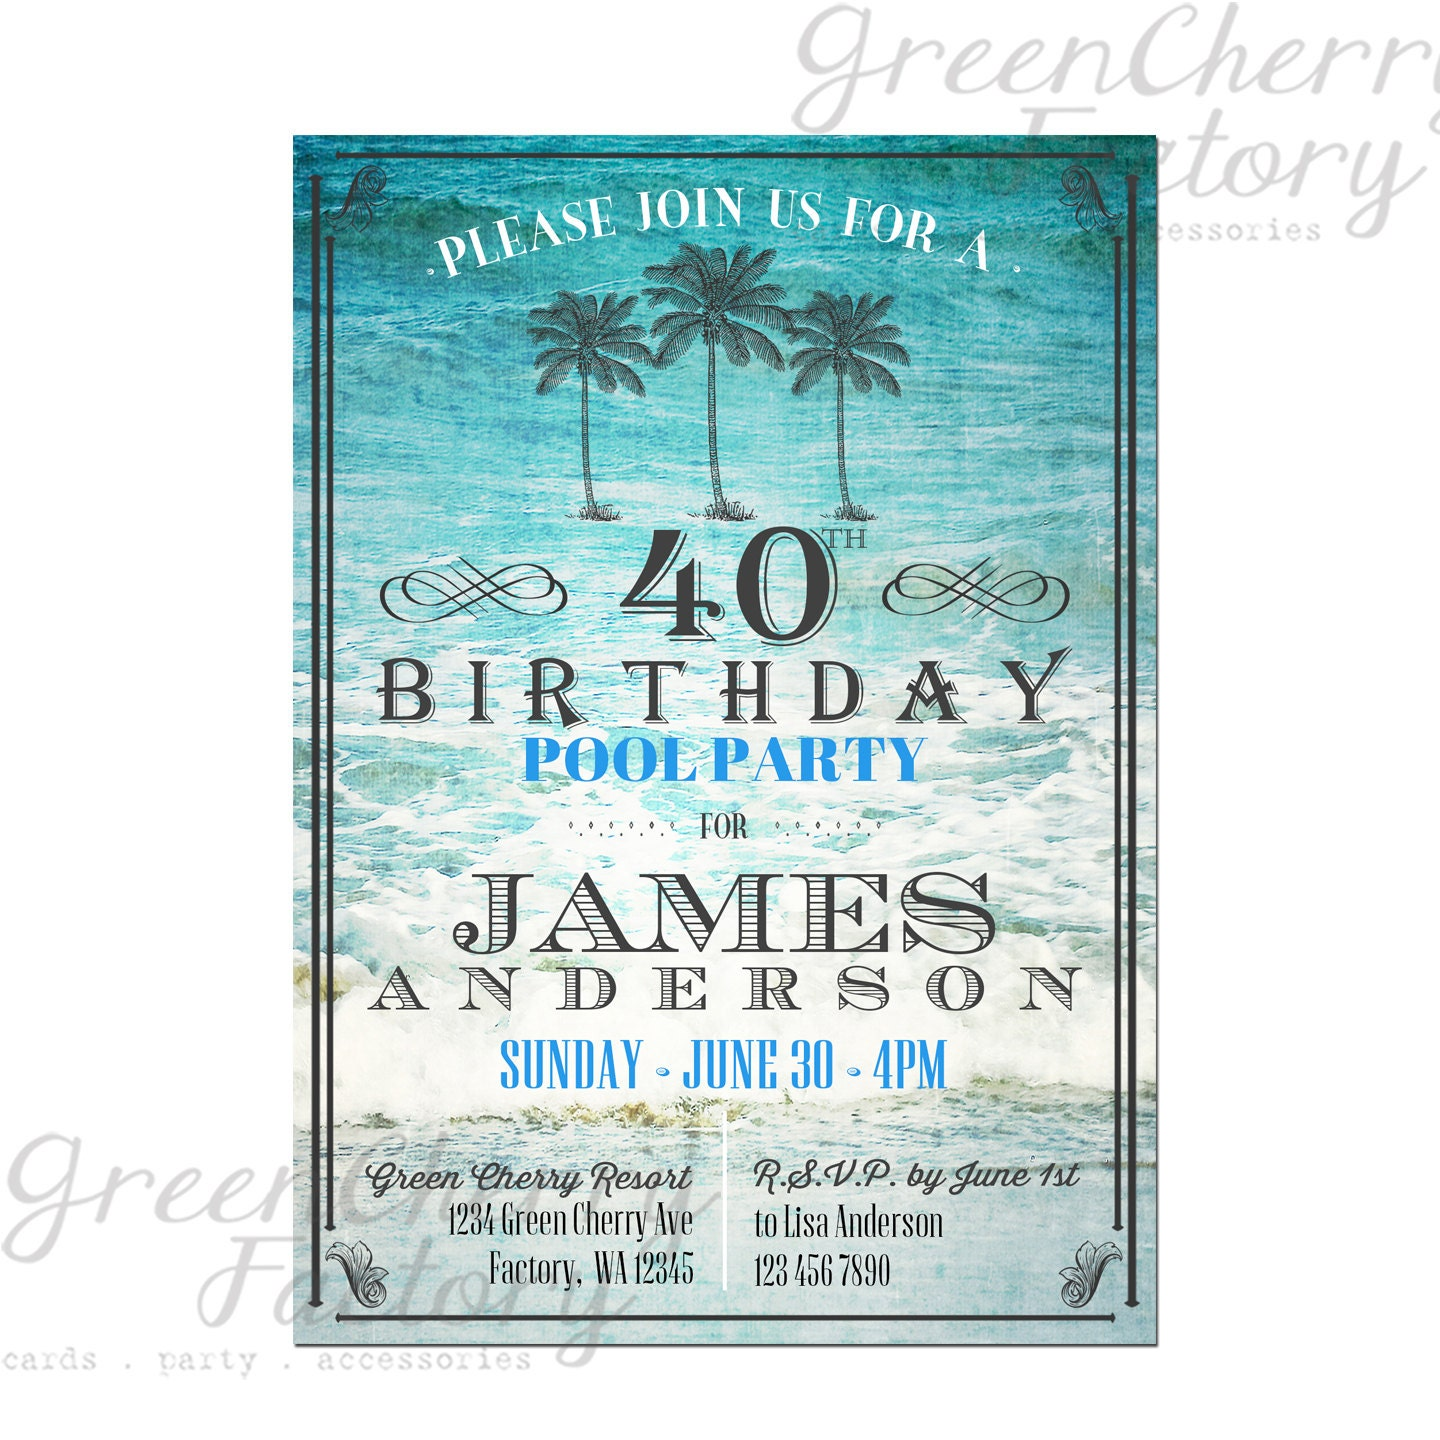 Invitation Cards For Birthday Party For Adults with amazing invitation design